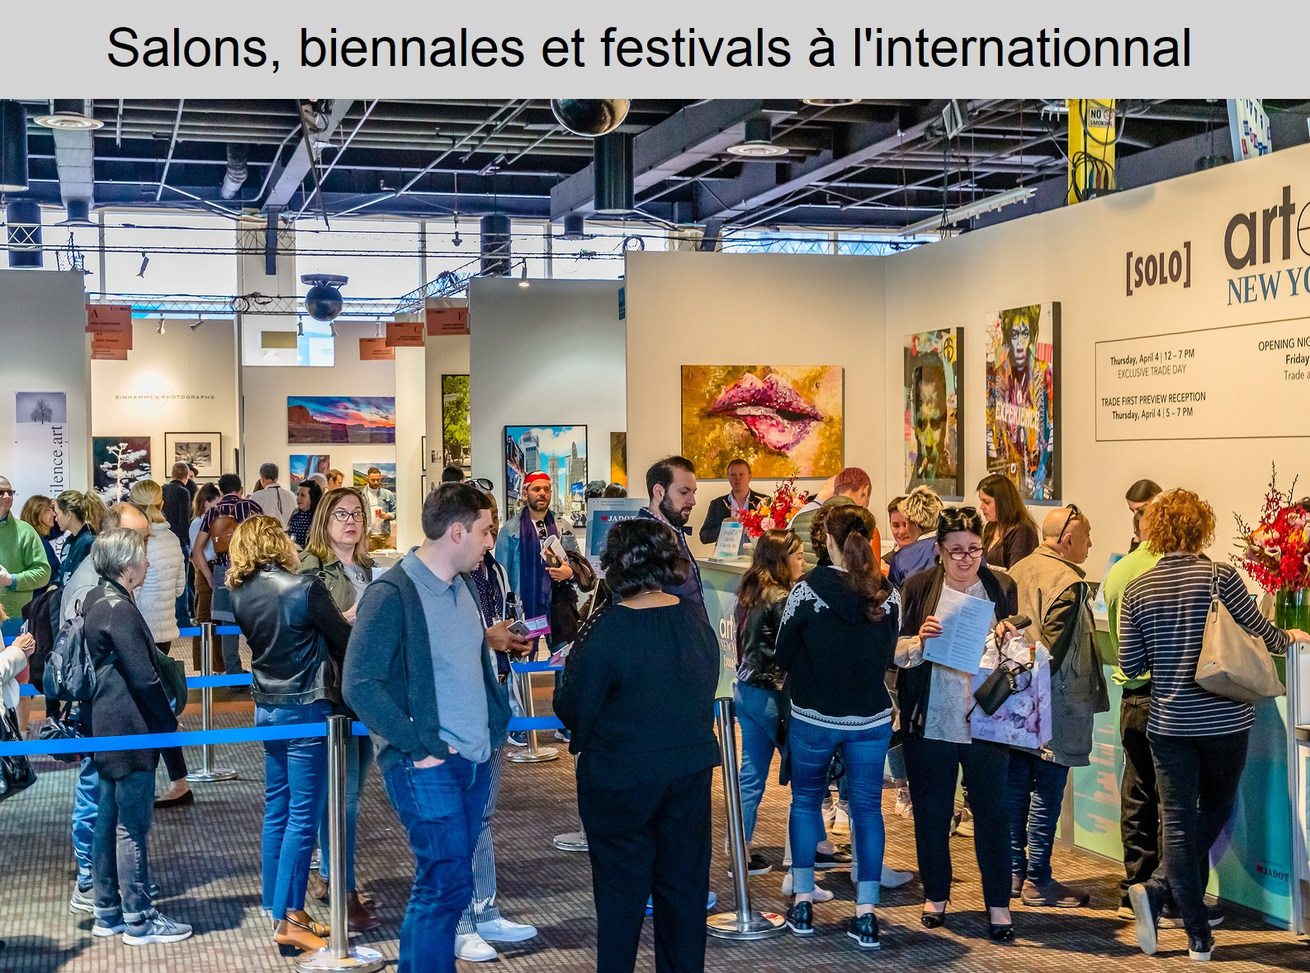 Salons, biennales, festivals à l'internationnal